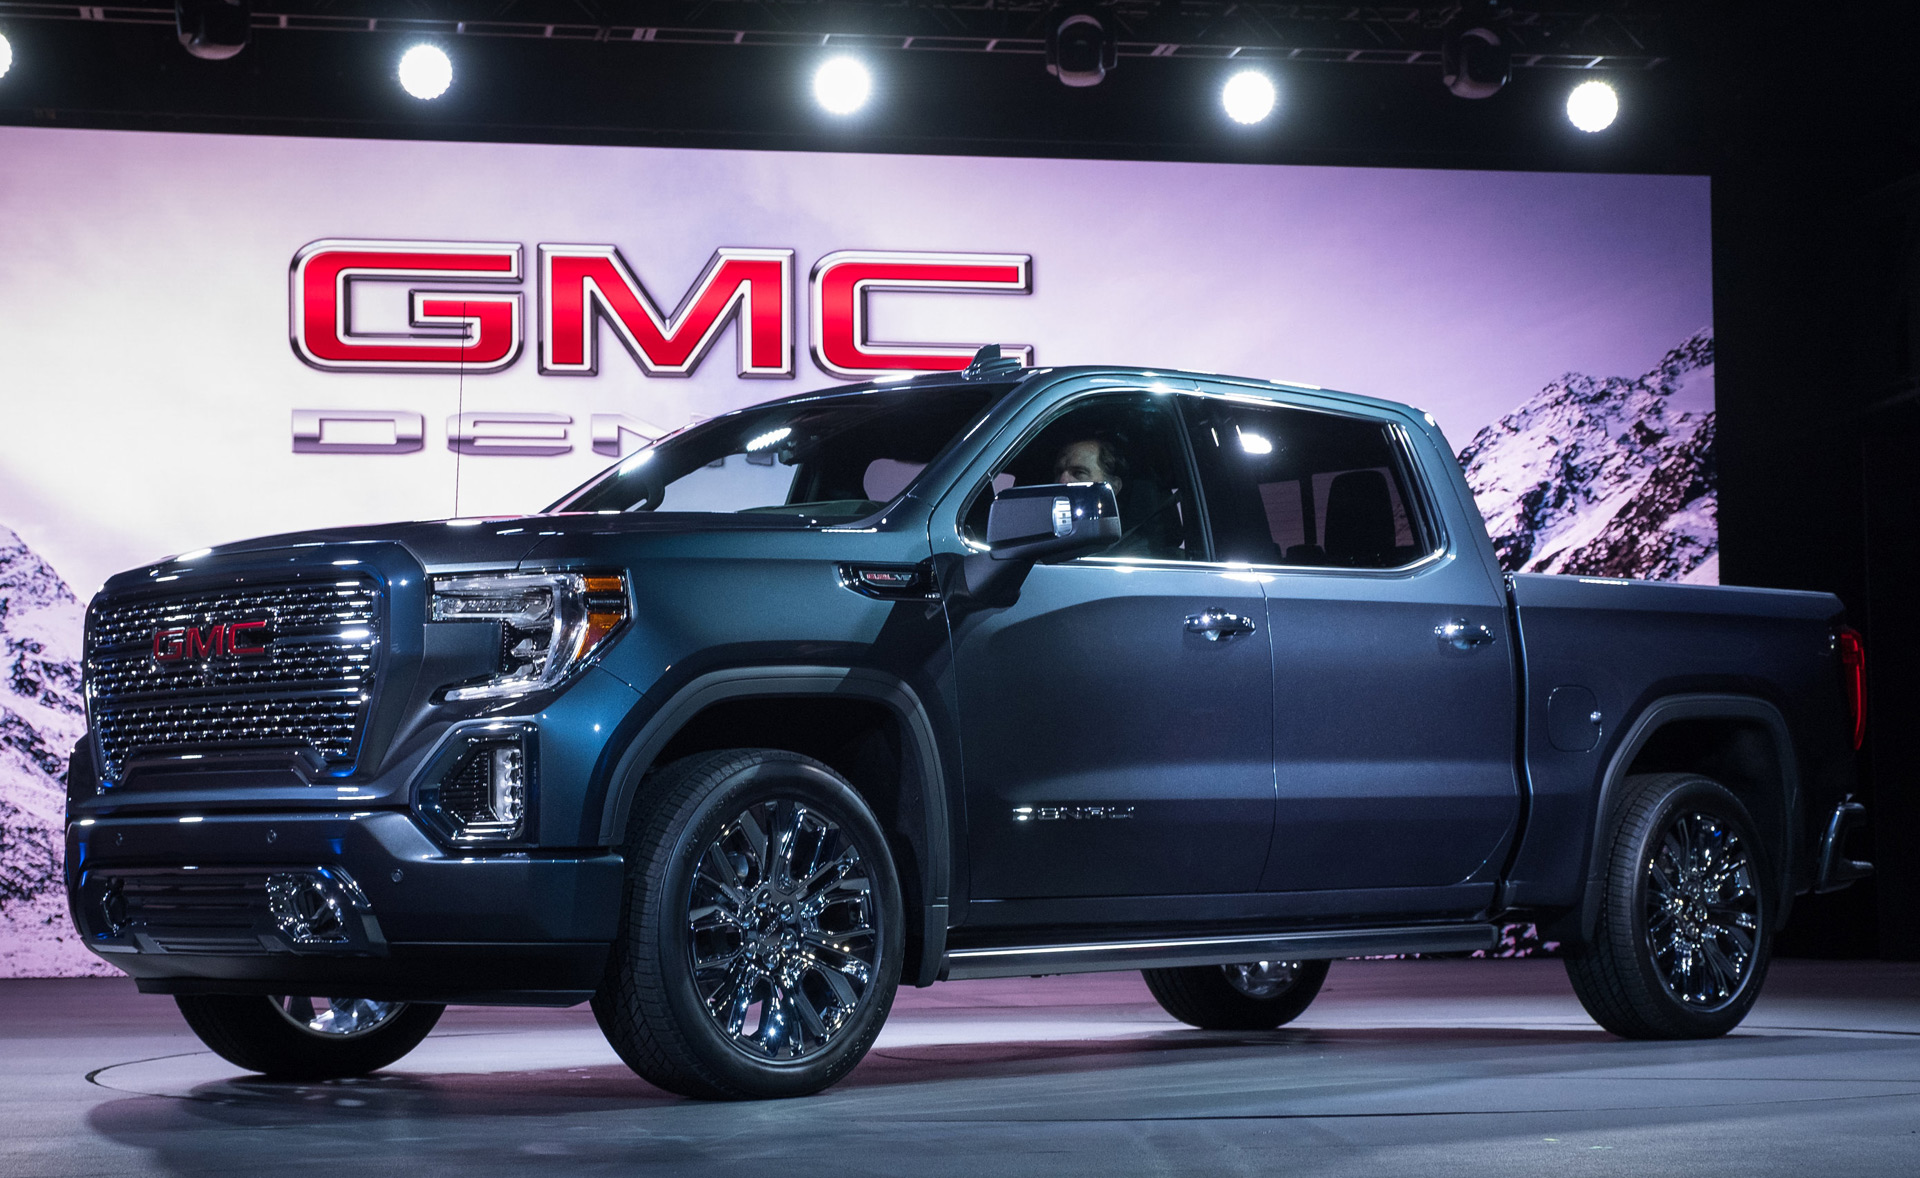 hight resolution of 2019 gmc sierra first look new truck pushes past silverado with carbon fiber bed transforming tailgate